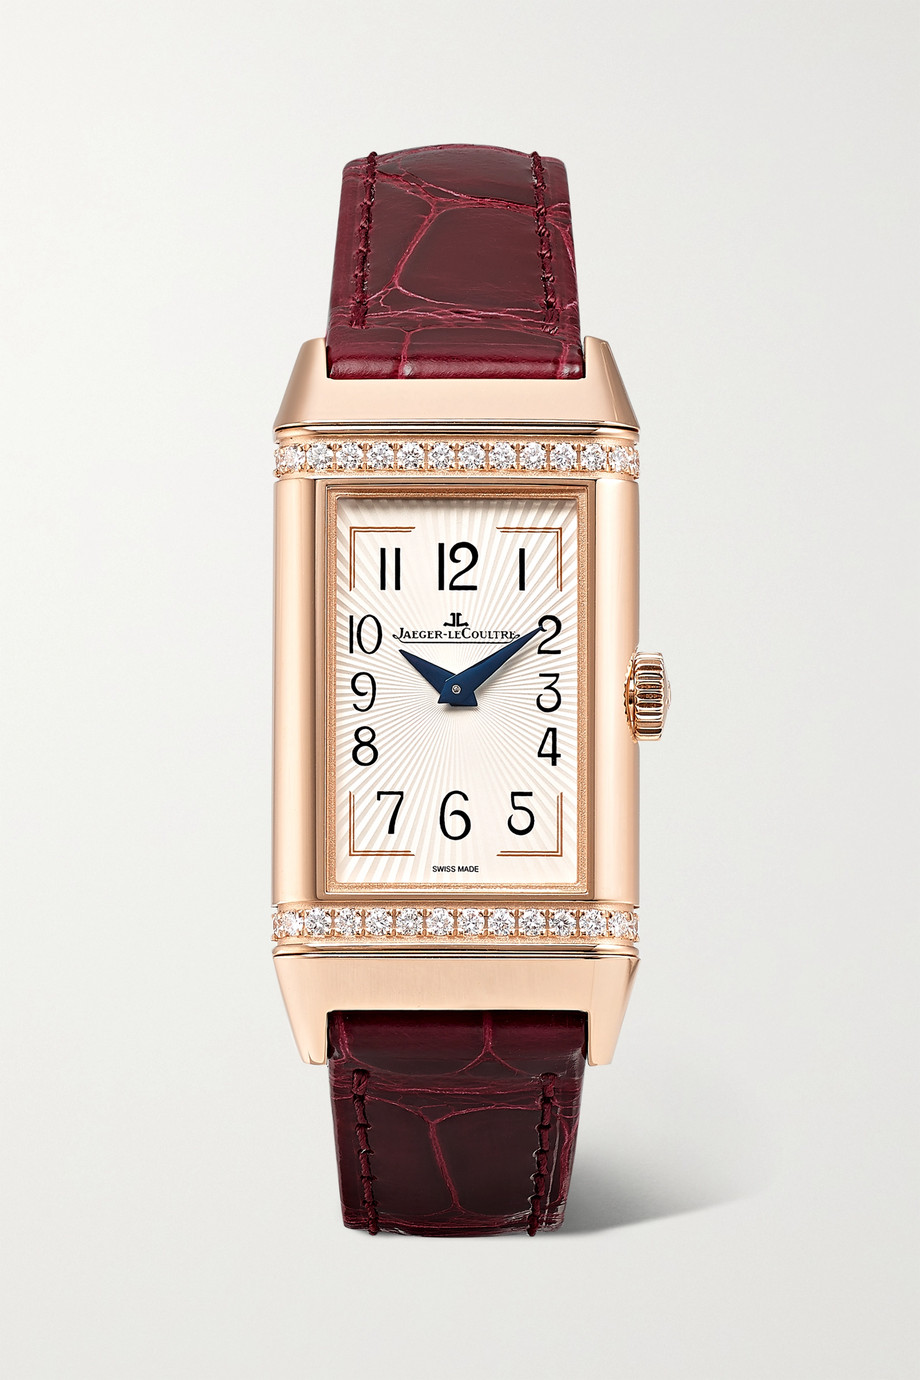 JAEGER-LECOULTRE Reverso One Duetto 20mm rose gold, diamond and alligator watch